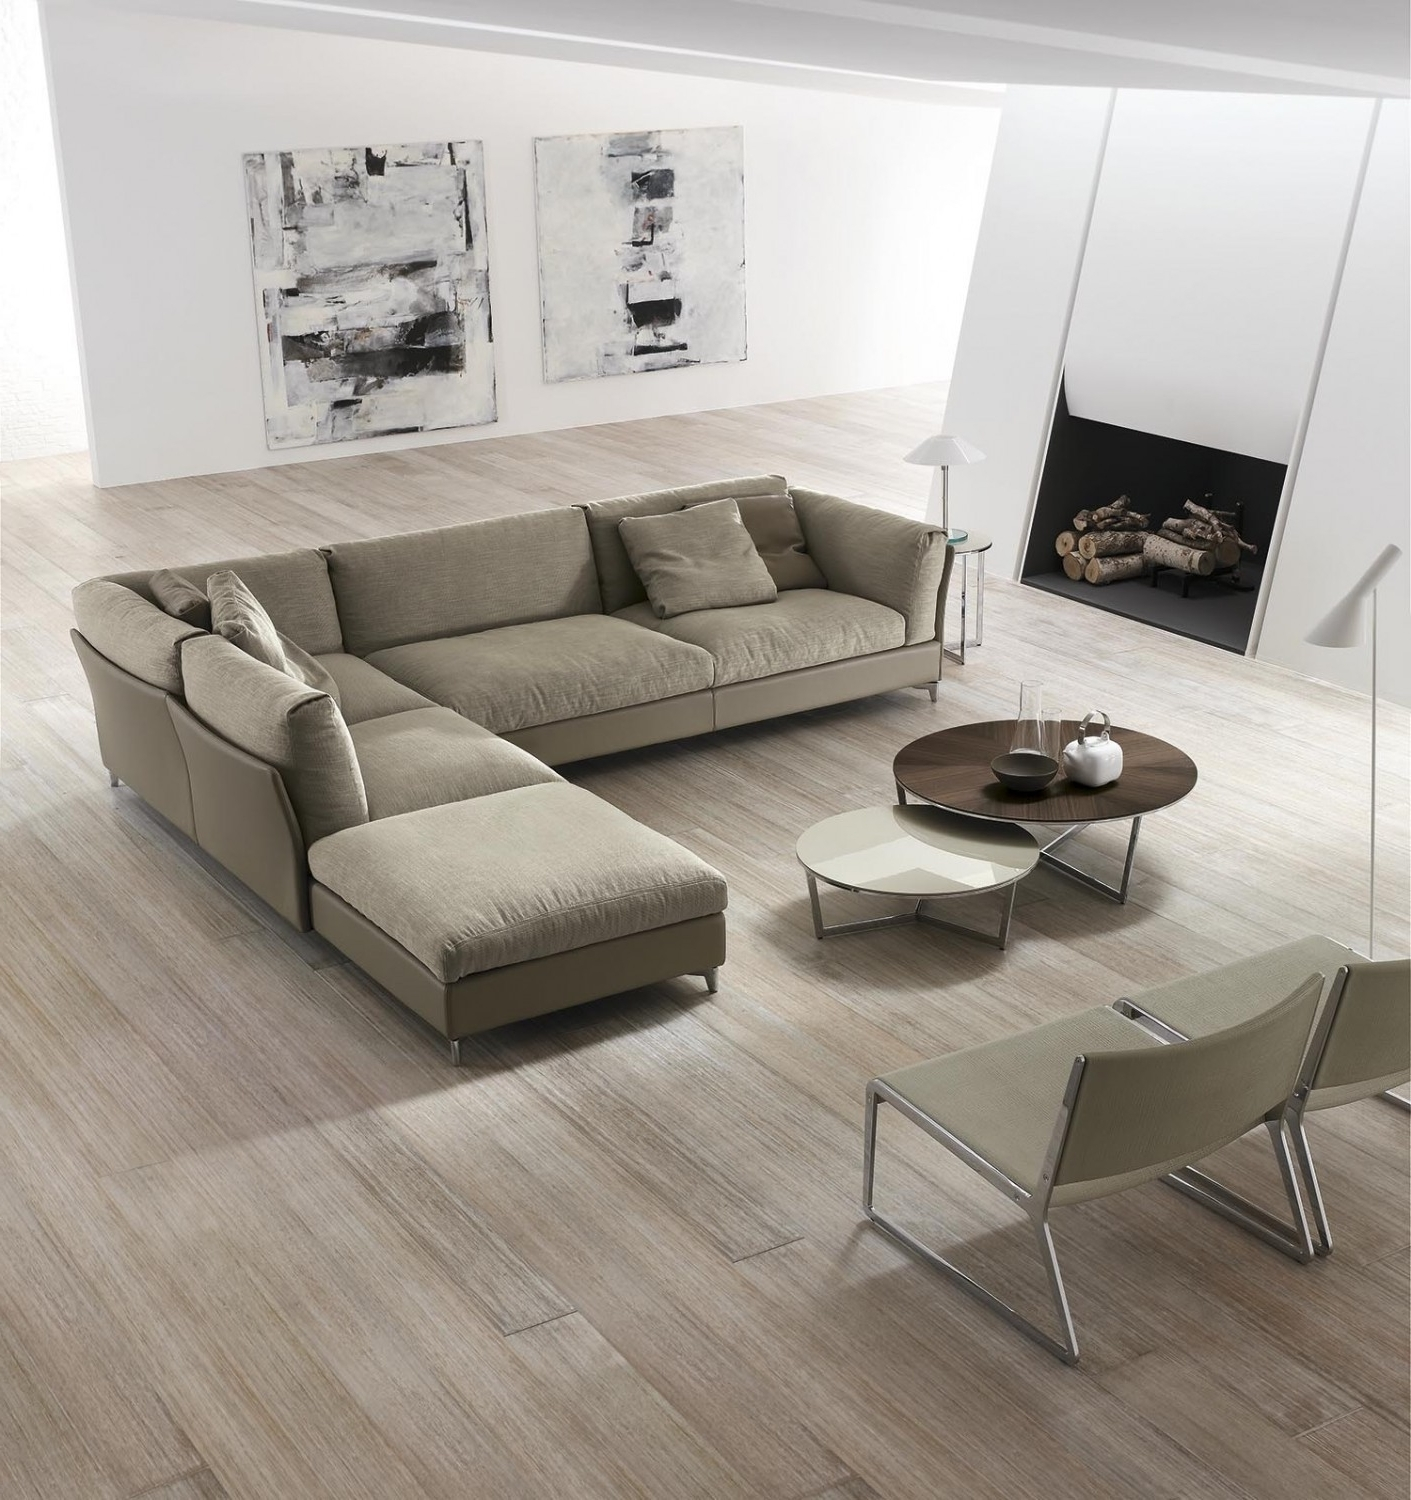 Widely Used Sectional Sofas At Chicago Regarding Awesome Sectional Sofa Chicago – Buildsimplehome (View 15 of 15)